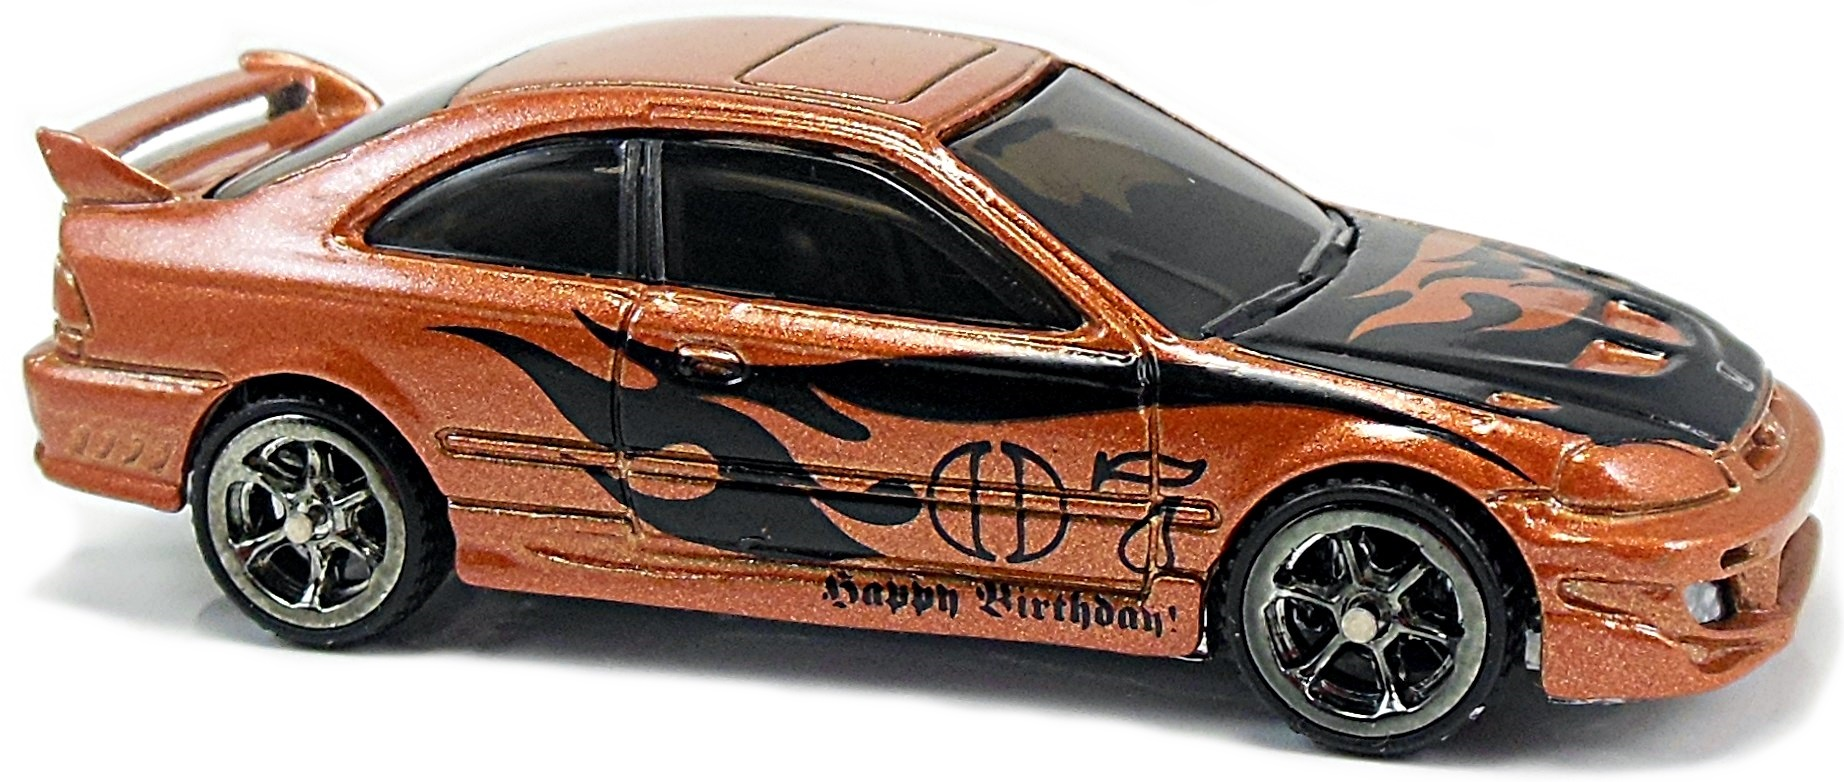 N. Mf Dk. Orange, Chrome Base, Black Int., Tinted Windows, Black Flames On  Sides And Hood, W/u201d07u201d And U201cHappy Birthdayu201d On Sides, Rrw6tnt, Th. Hot  Wheels ...